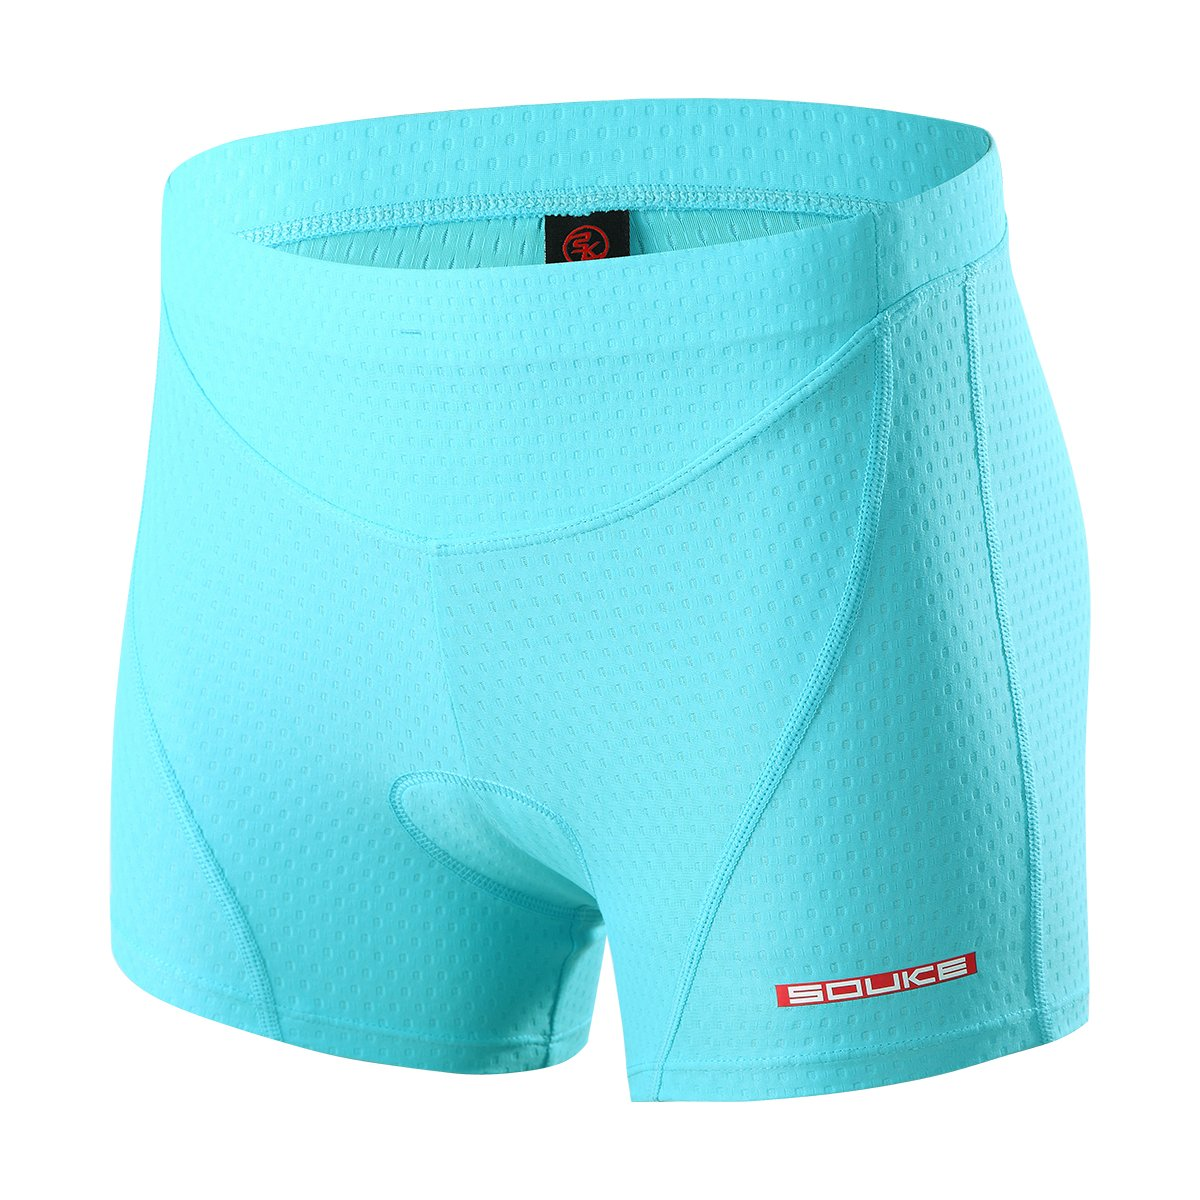 404d52d311 Eco-daily Cycling Shorts Women s 3D Padded Bicycle Bike Biking Underwear  Shorts product image